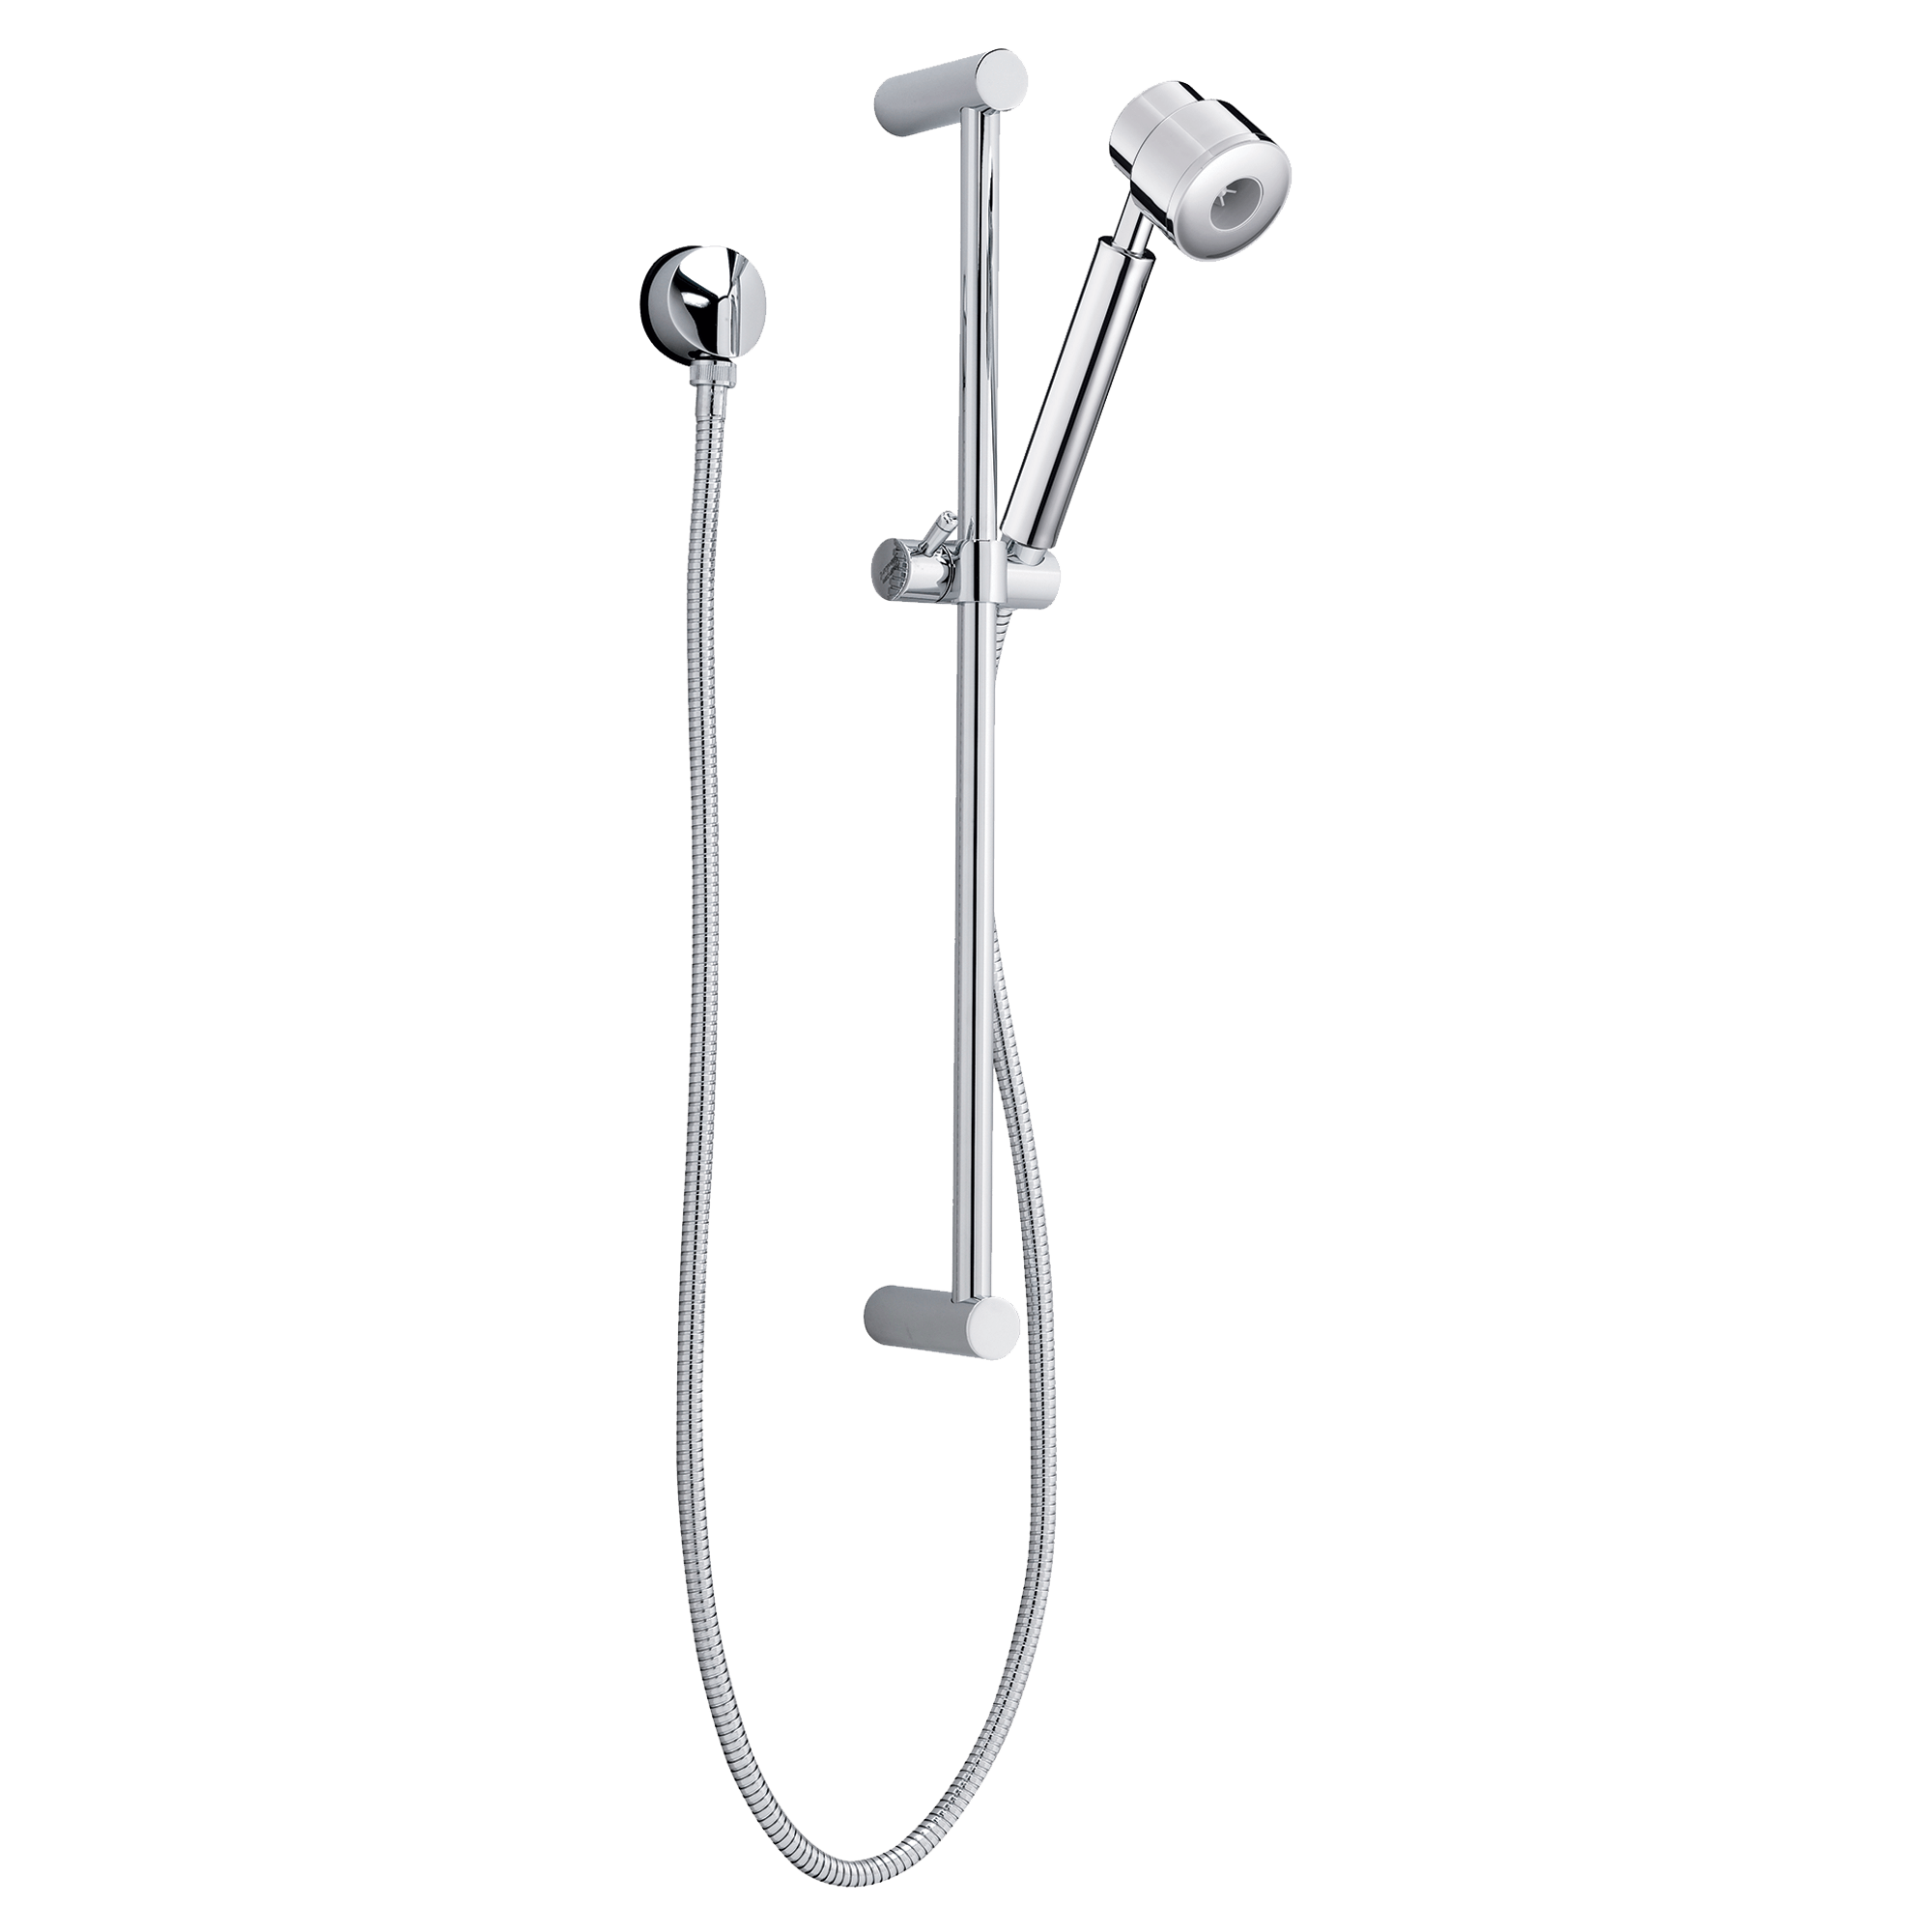 Home Water Booster Pump Shower